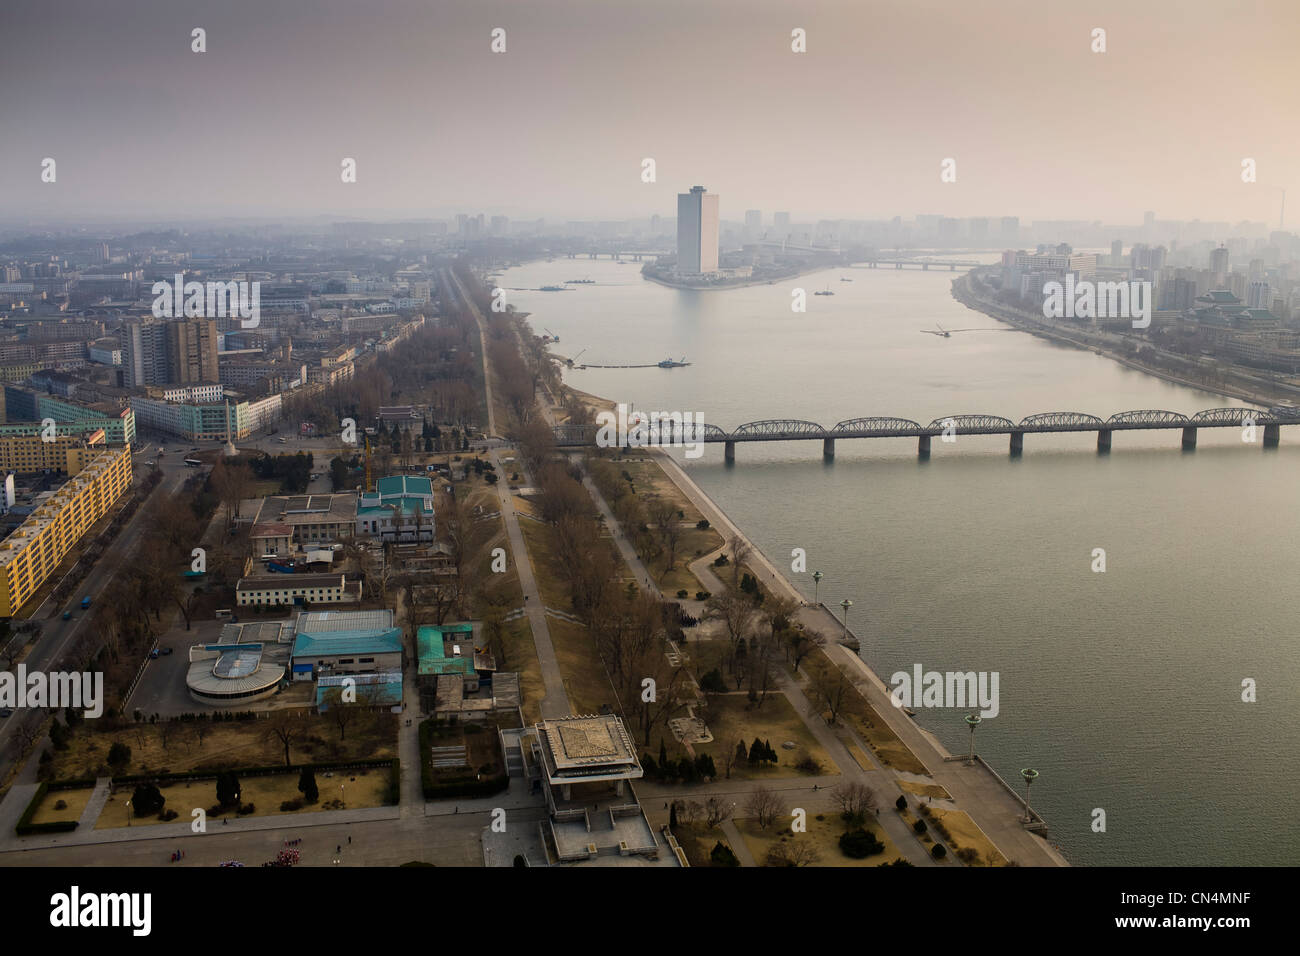 North Korea, Pyongyang, Juche tower, elevated view of the Taedong river and of Yanggak Island - Stock Image